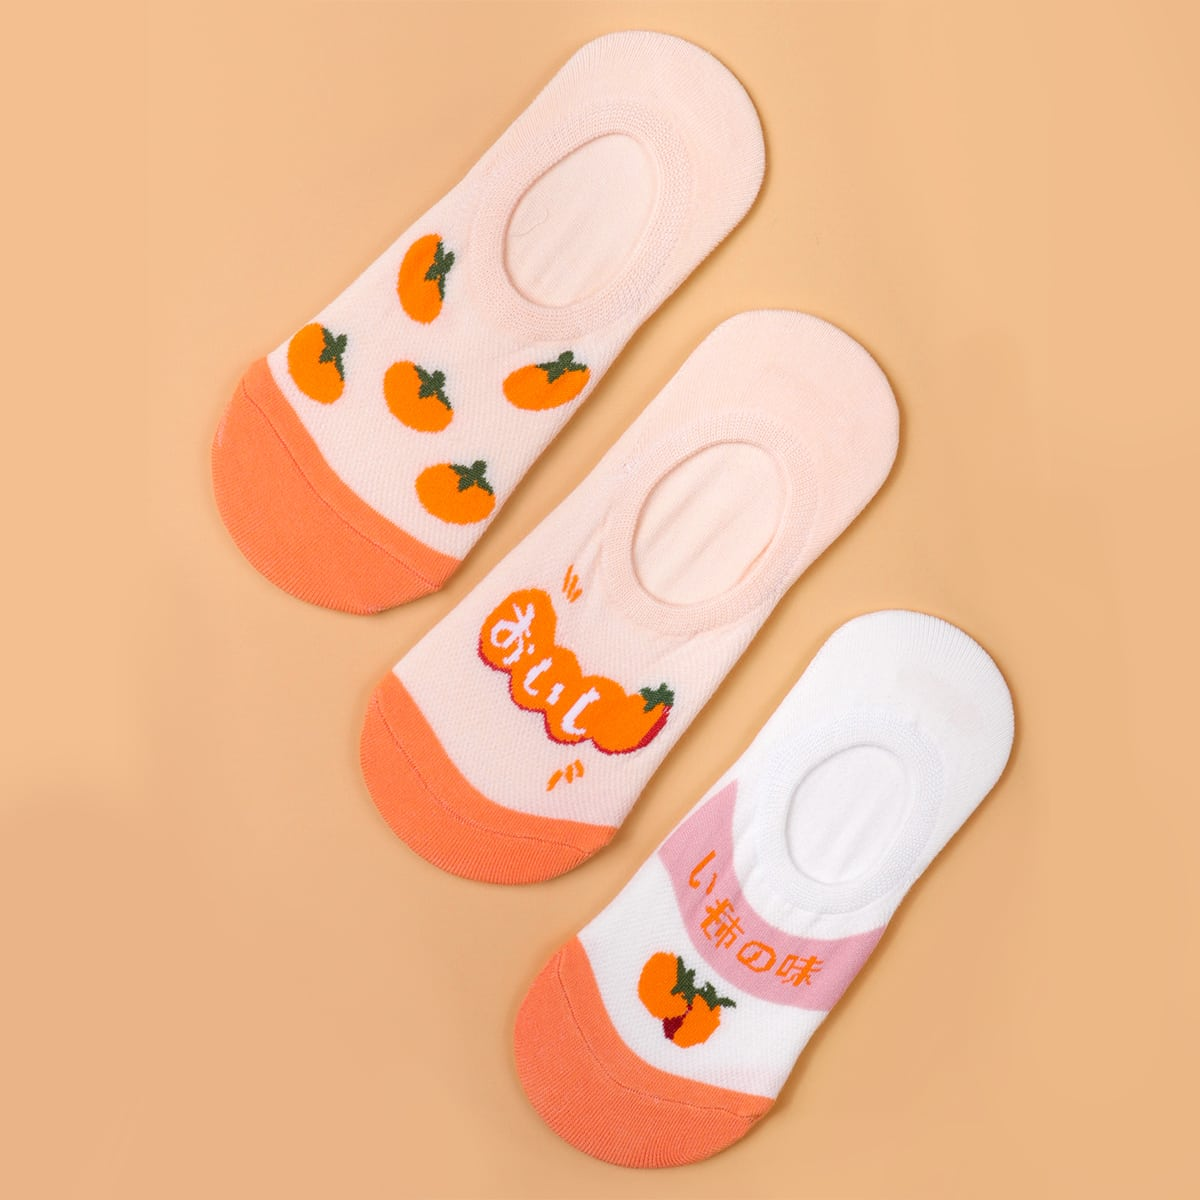 3pairs Fruit Print Ankle Socks, SHEIN  - buy with discount